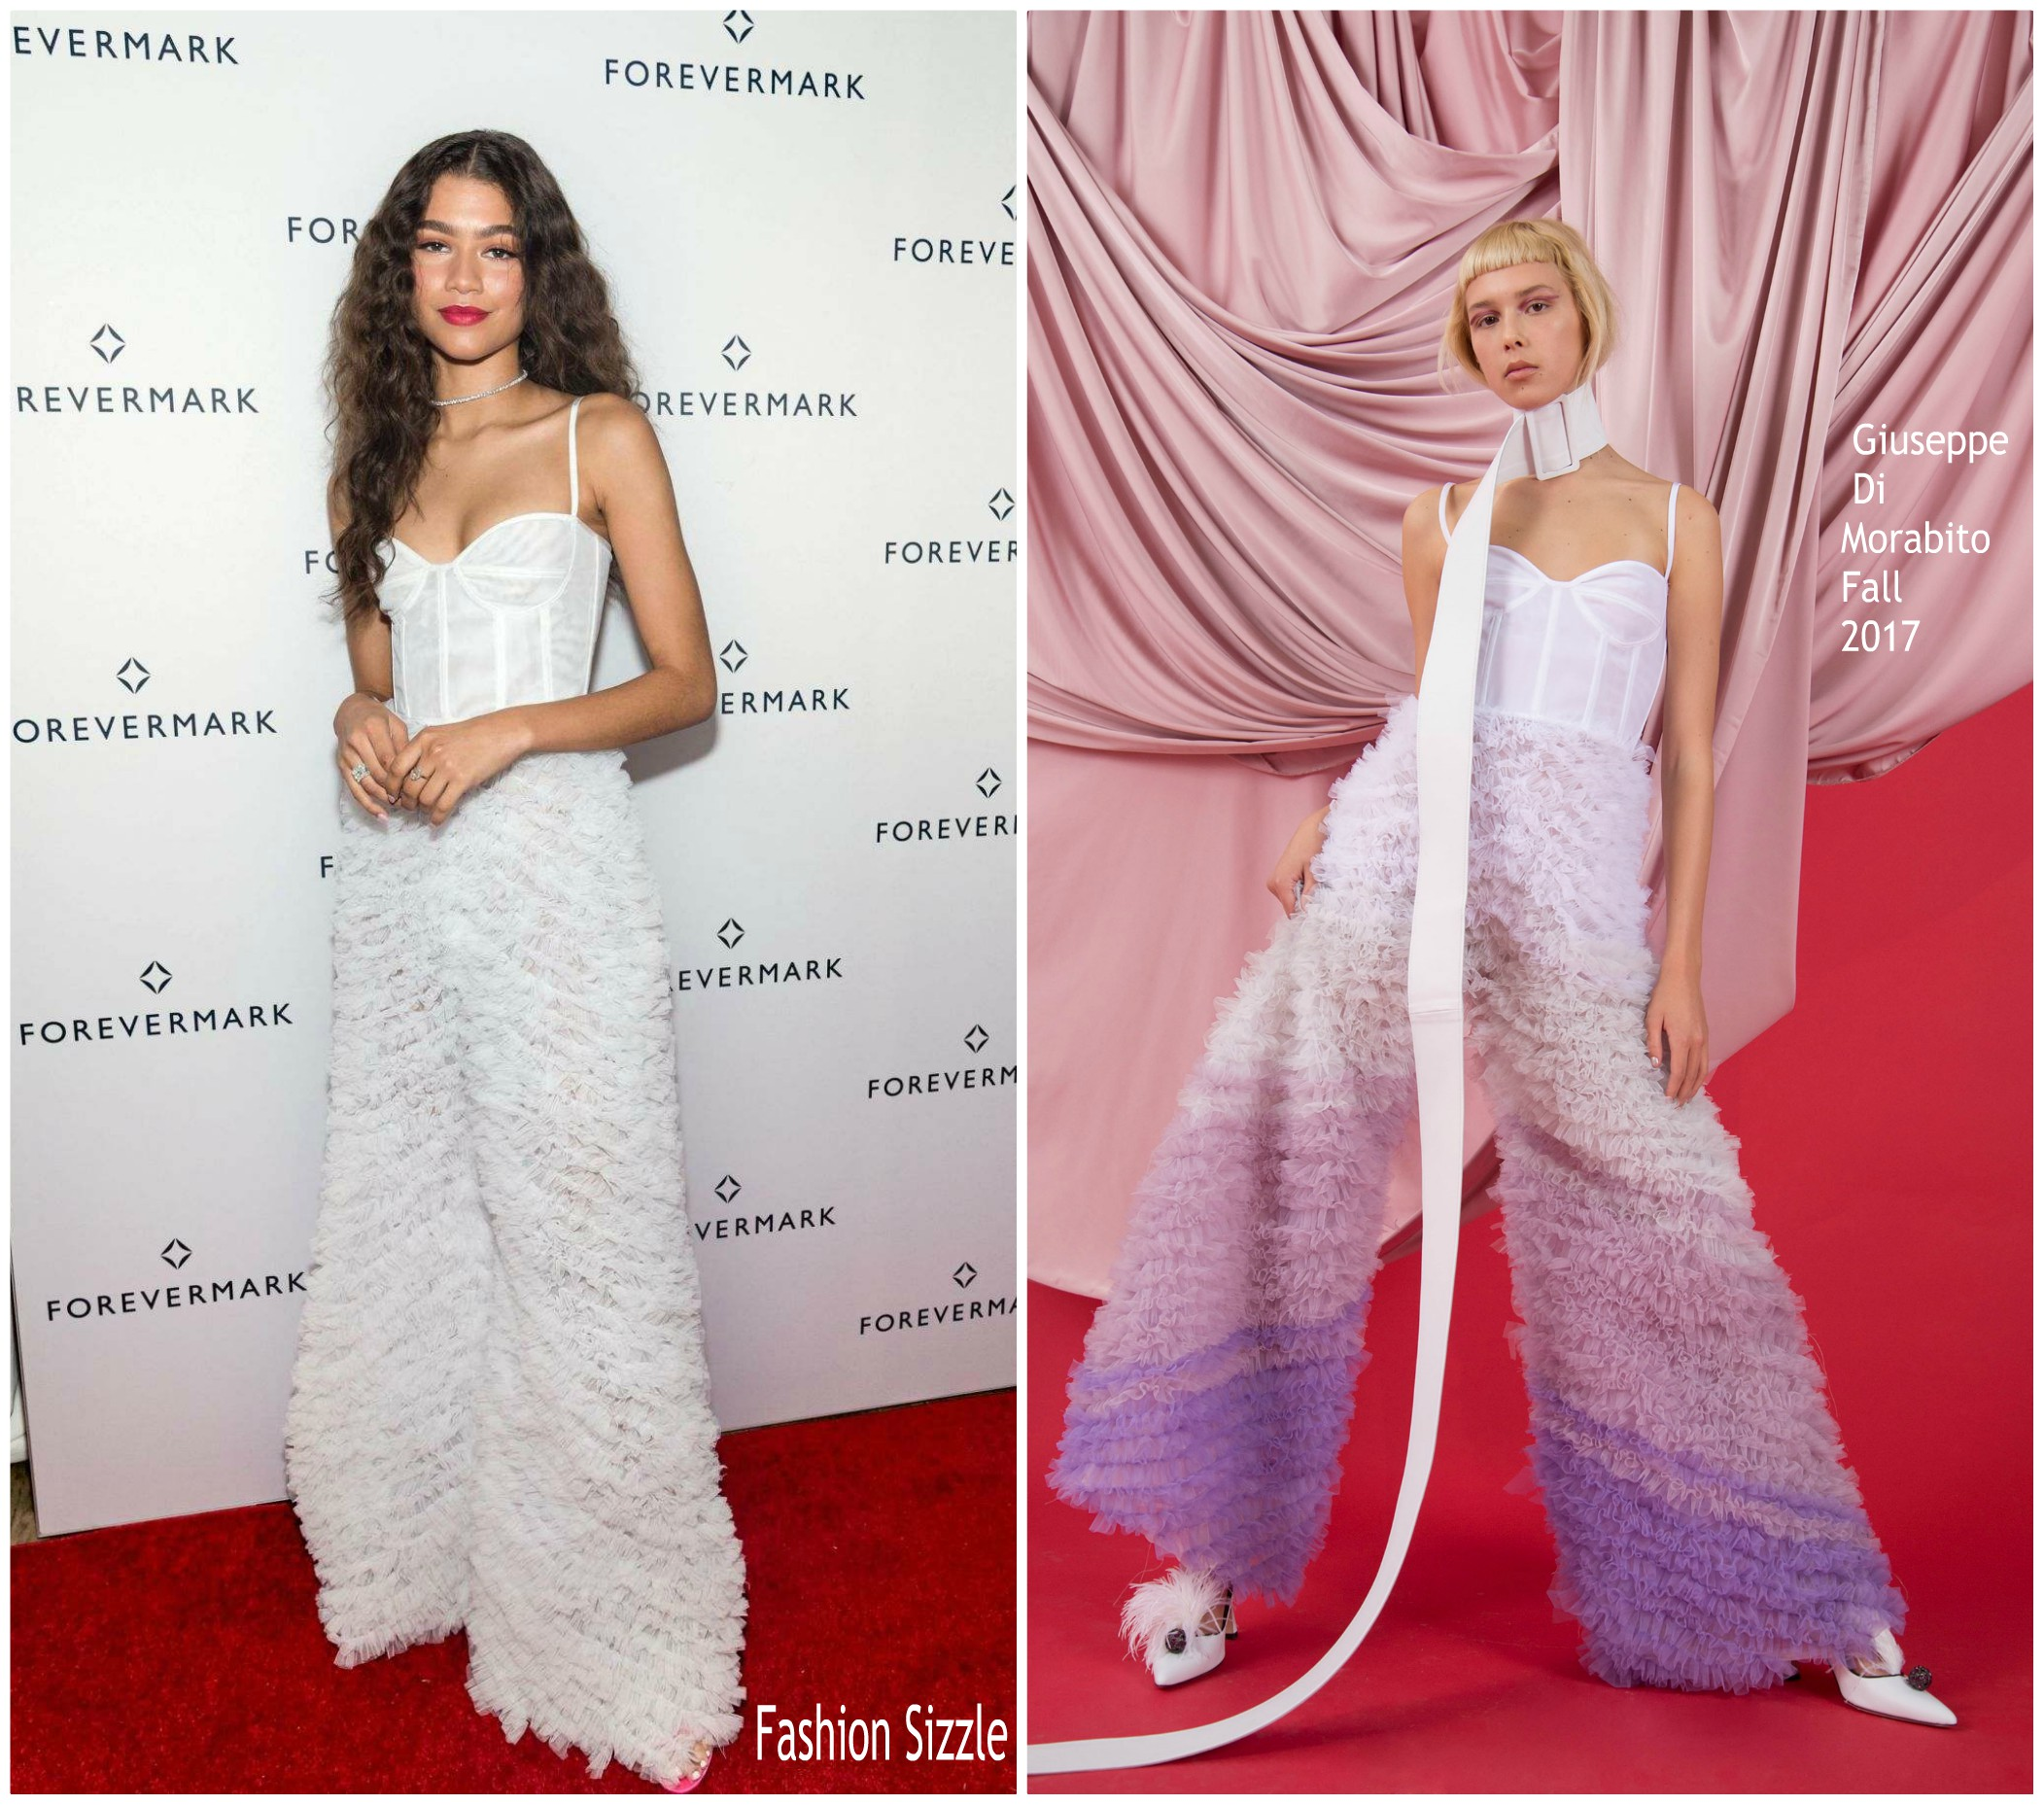 zendaya-coleman-in-giuseppe-di-morabito-forevermark-nyc-event